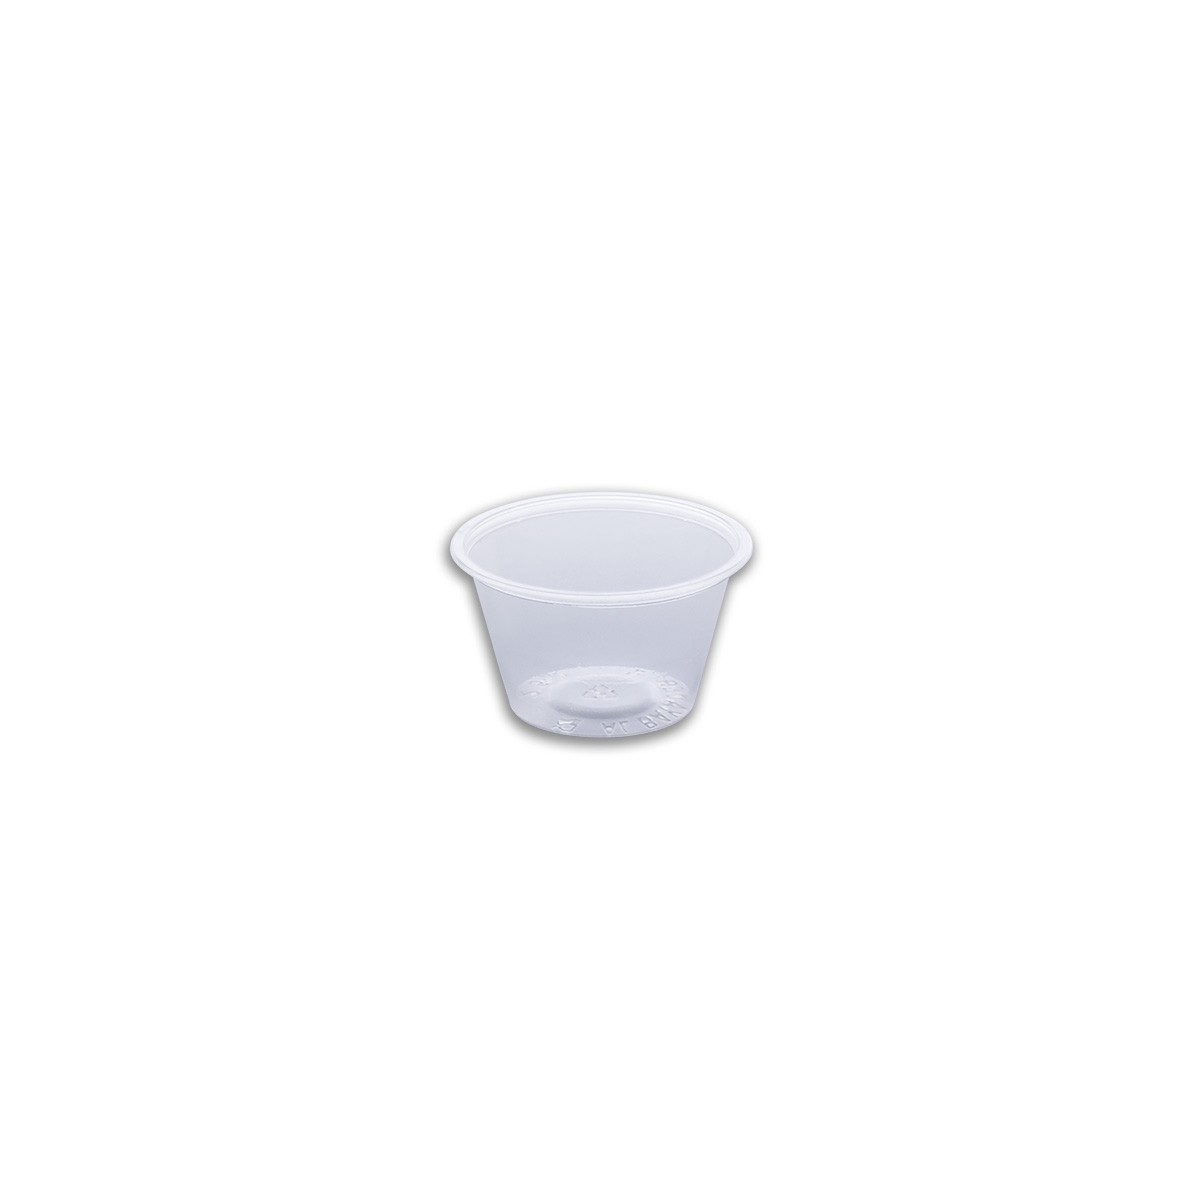 Tinypac Clear Round Portion Cup 75cc | 2500pcs